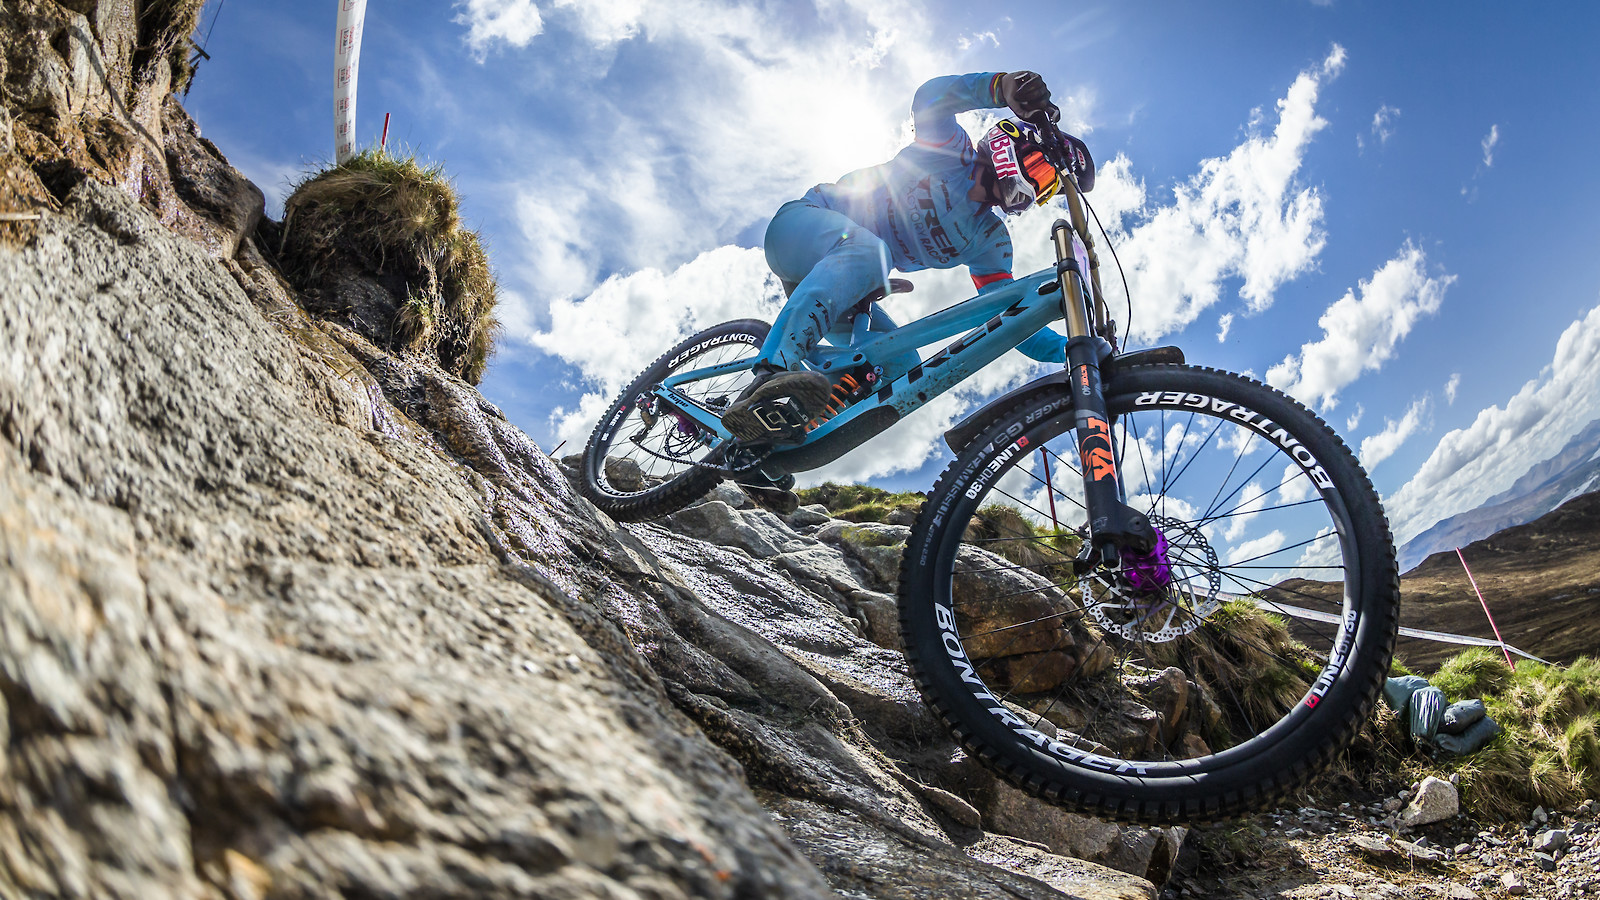 33351514788 3538fc4d21 o - phunkt.com - Mountain Biking Pictures - Vital MTB